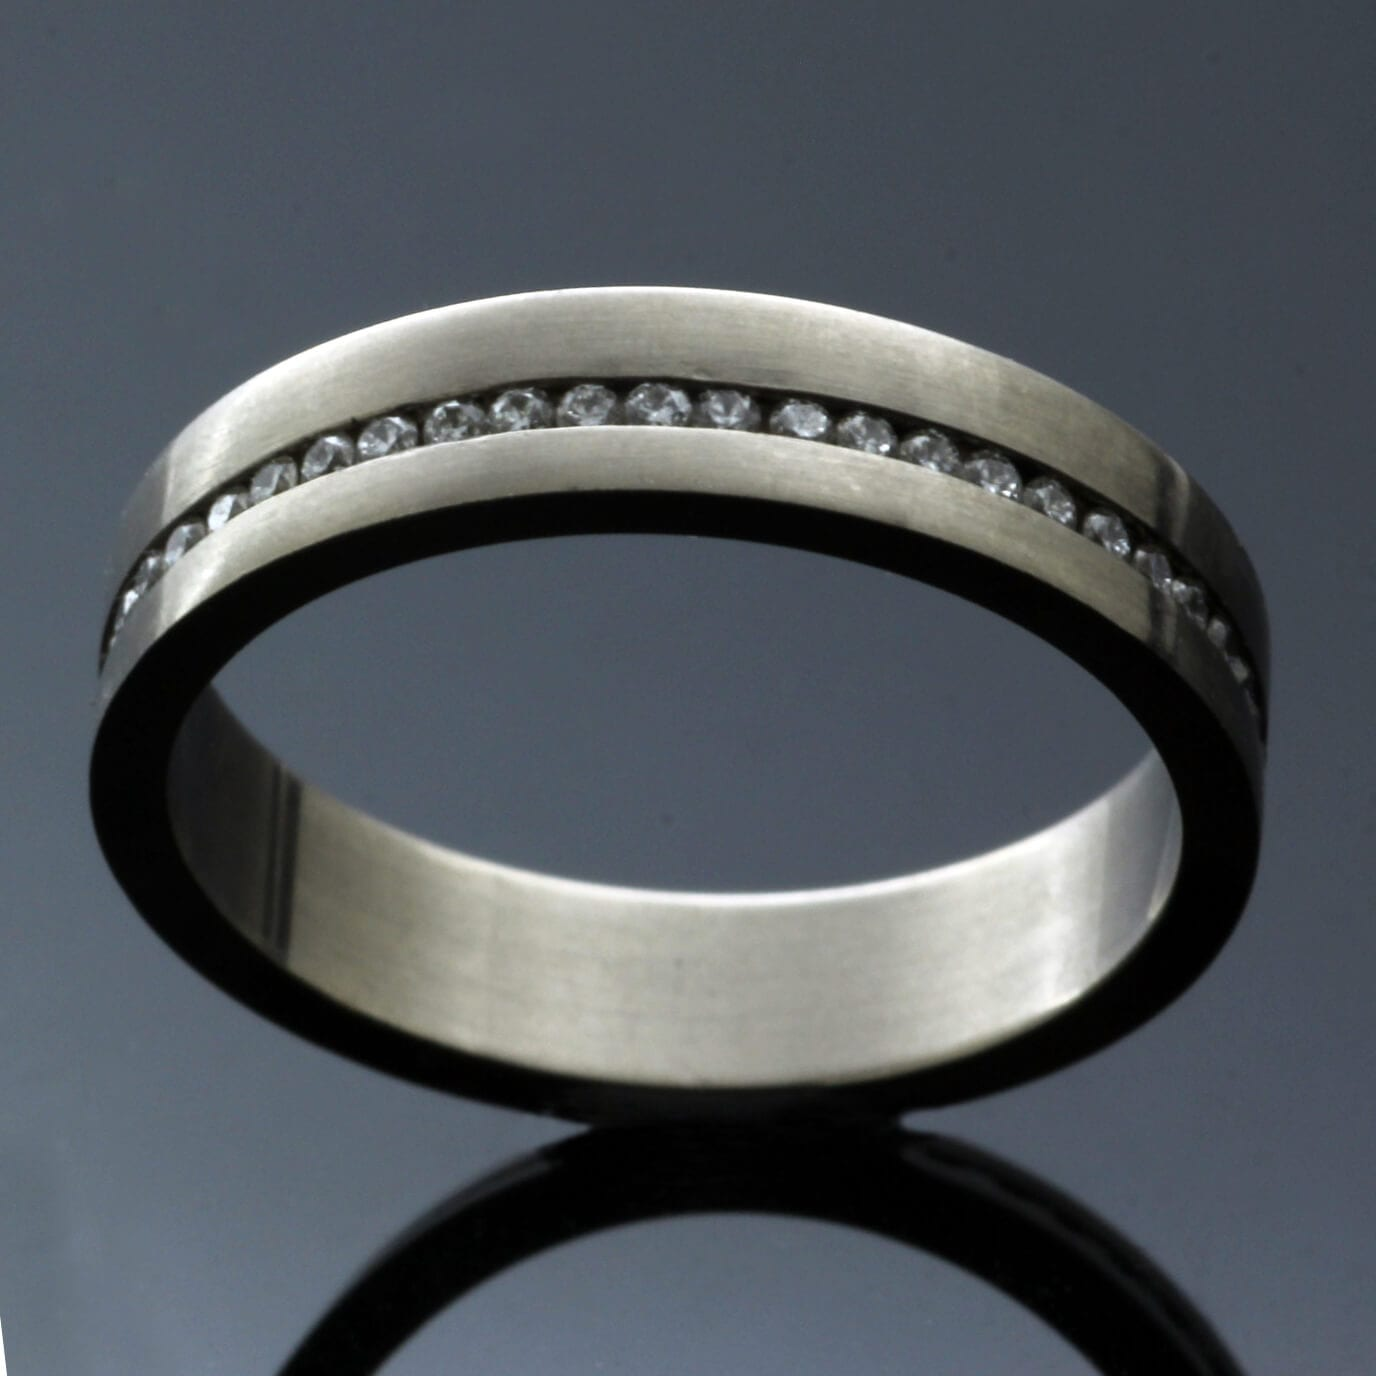 Contemporary handcrafted white gold diamond eternity band unique design